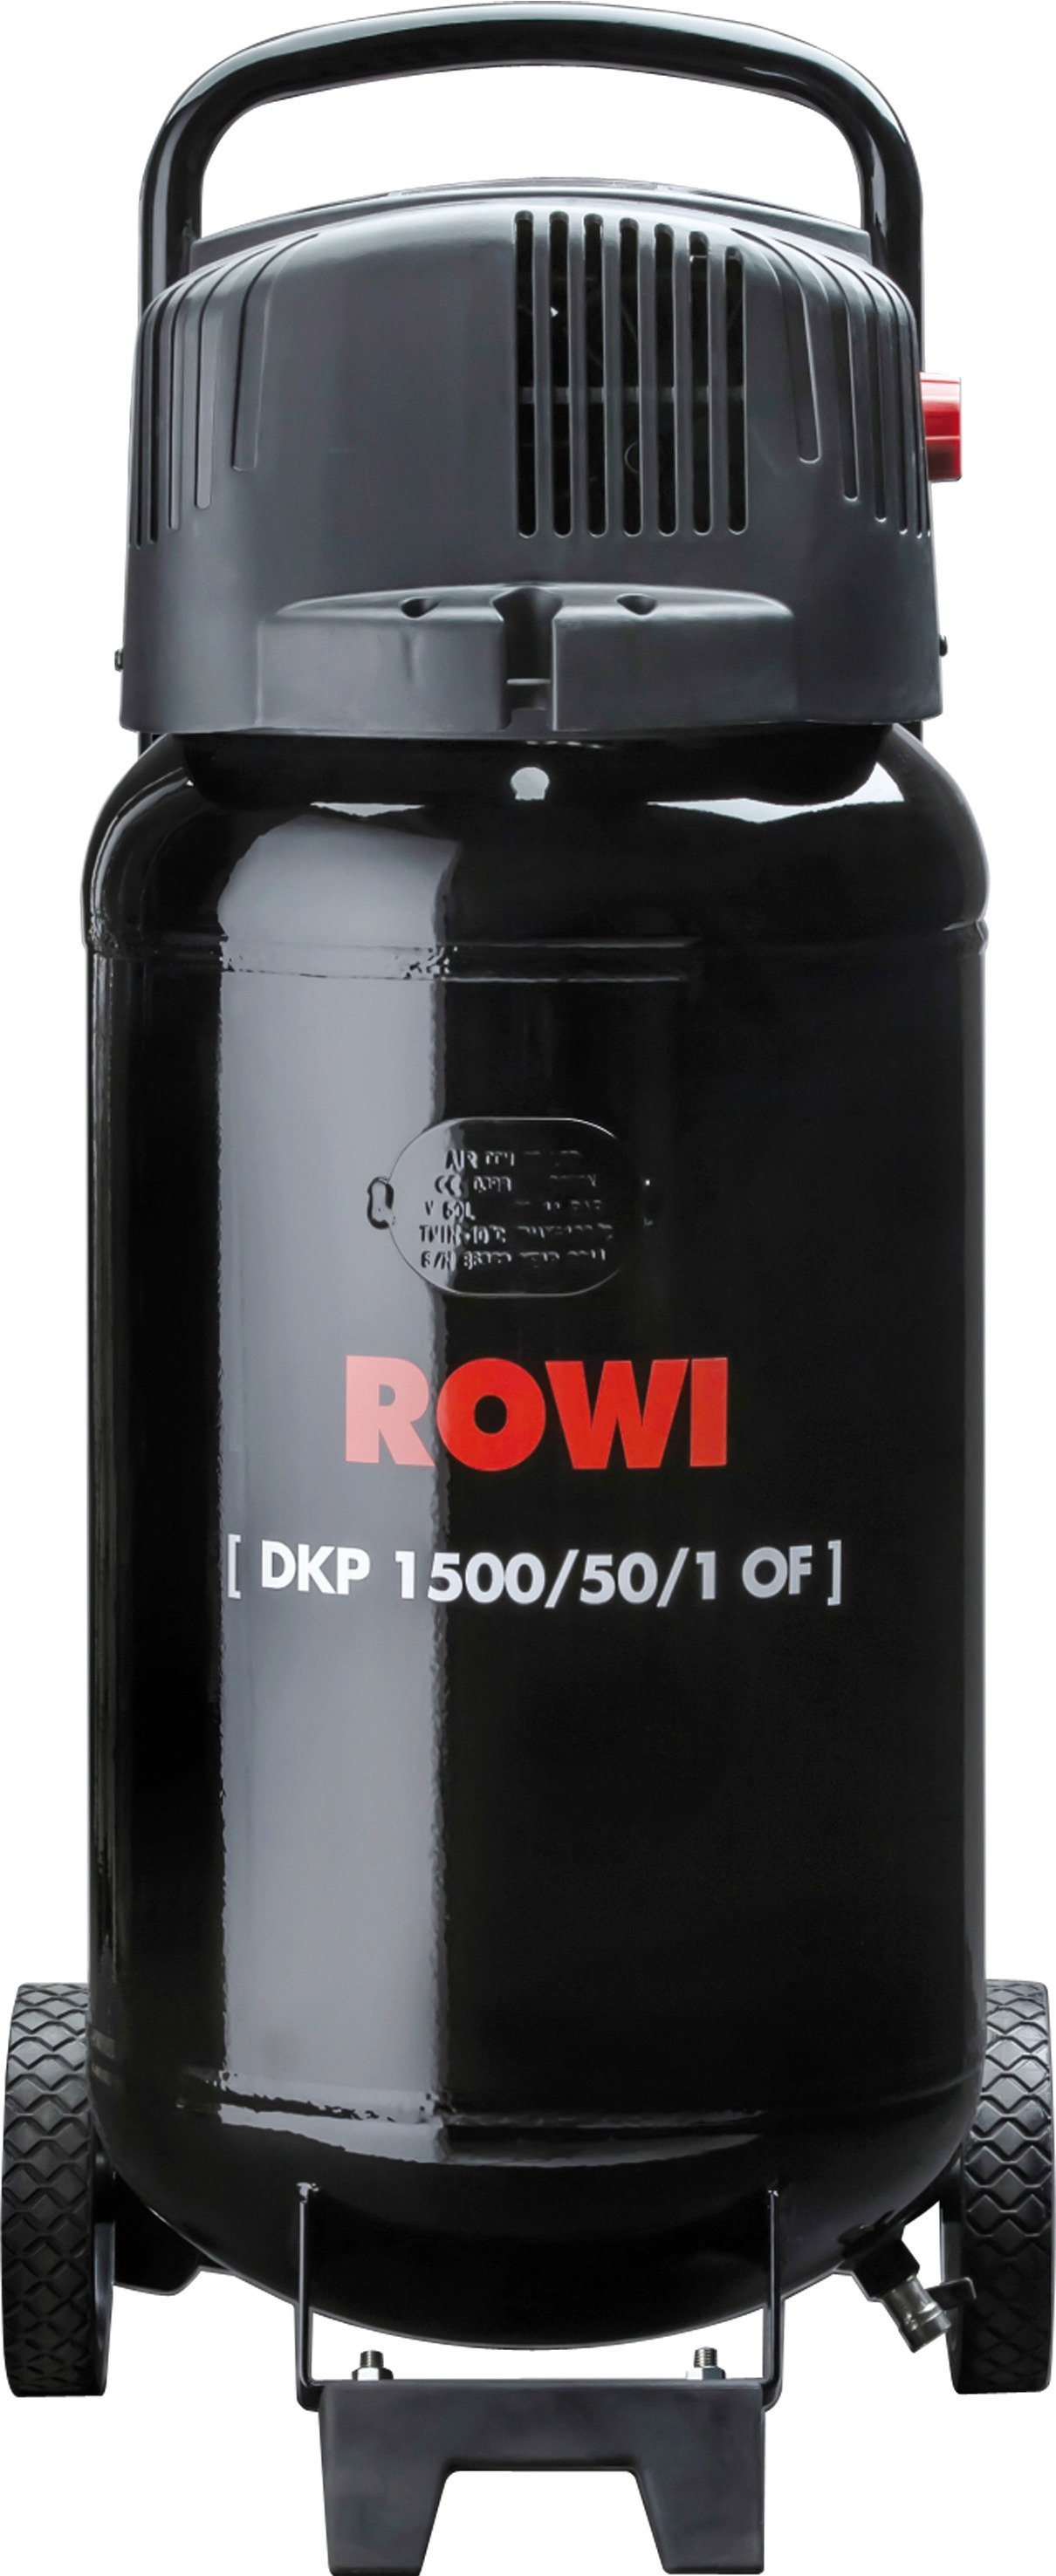 Rowi Kompressor DKP 1500 50 2 OF Vertical Air